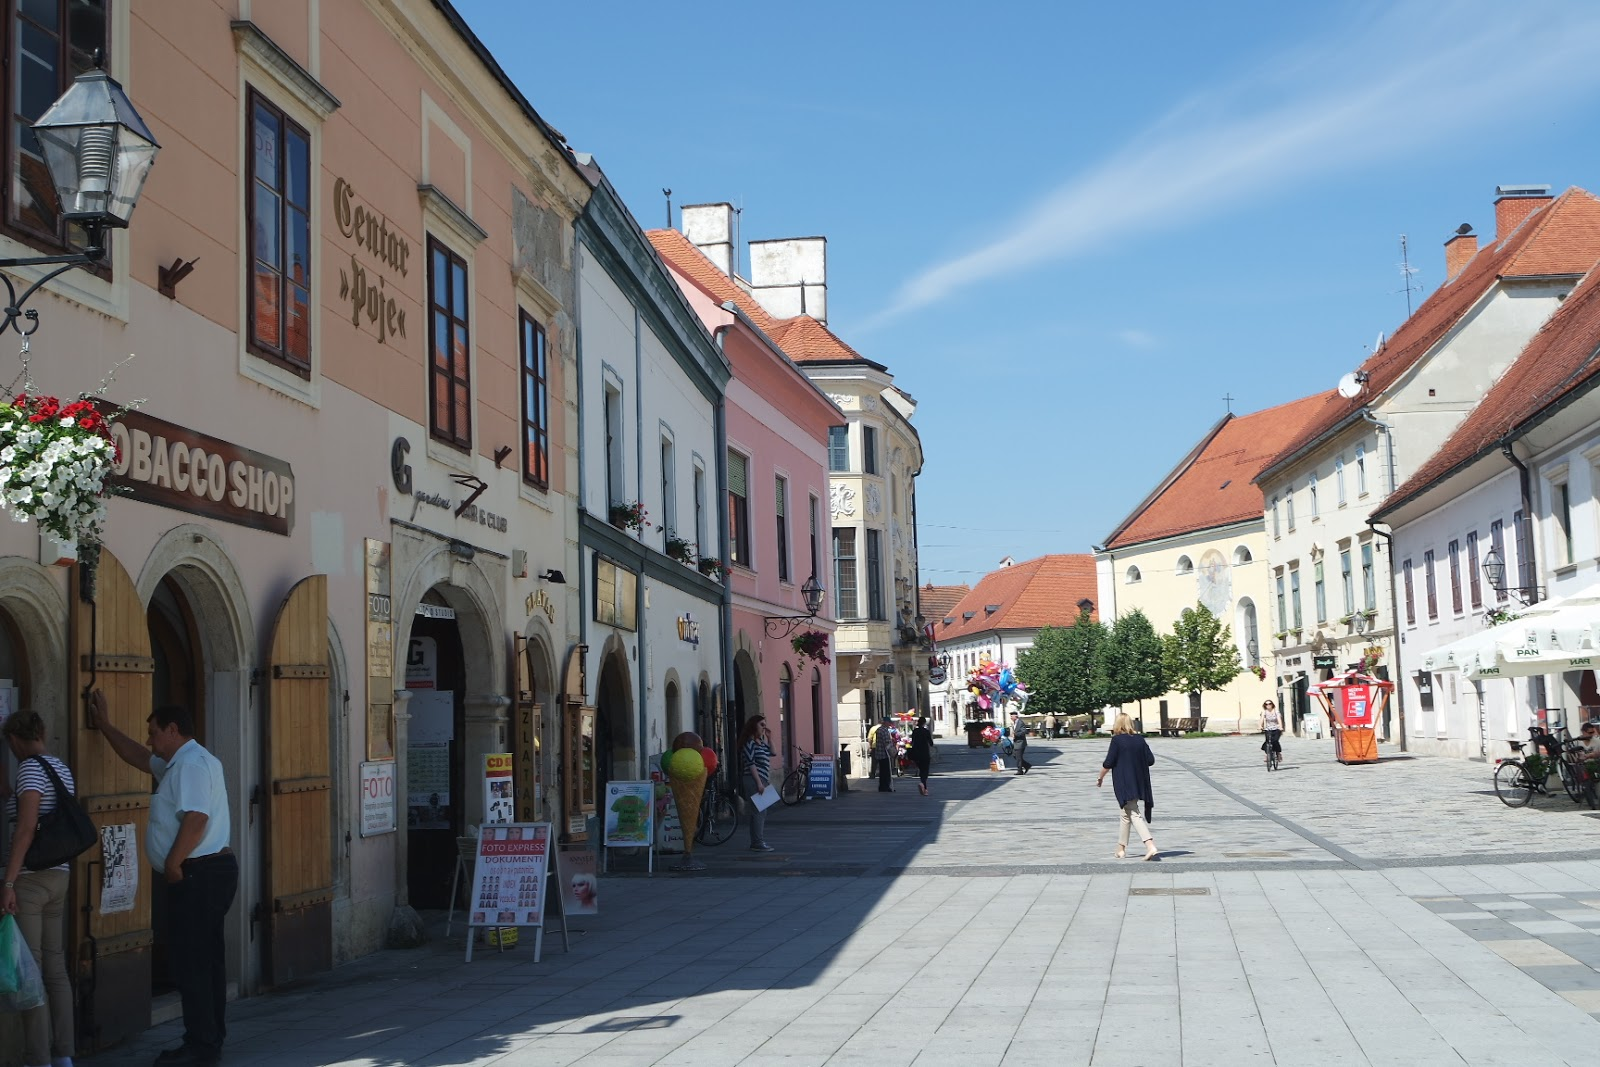 varazdin muslim Your halal holidays in croatia one of the interesting things to do in croatia is undoubtedly discovering some of the most beautiful places in central croatia in regions where secrets of hidden castles and manor houses interweave with picturesque hills, woodland, clear rivers, cranky roads and bridges.